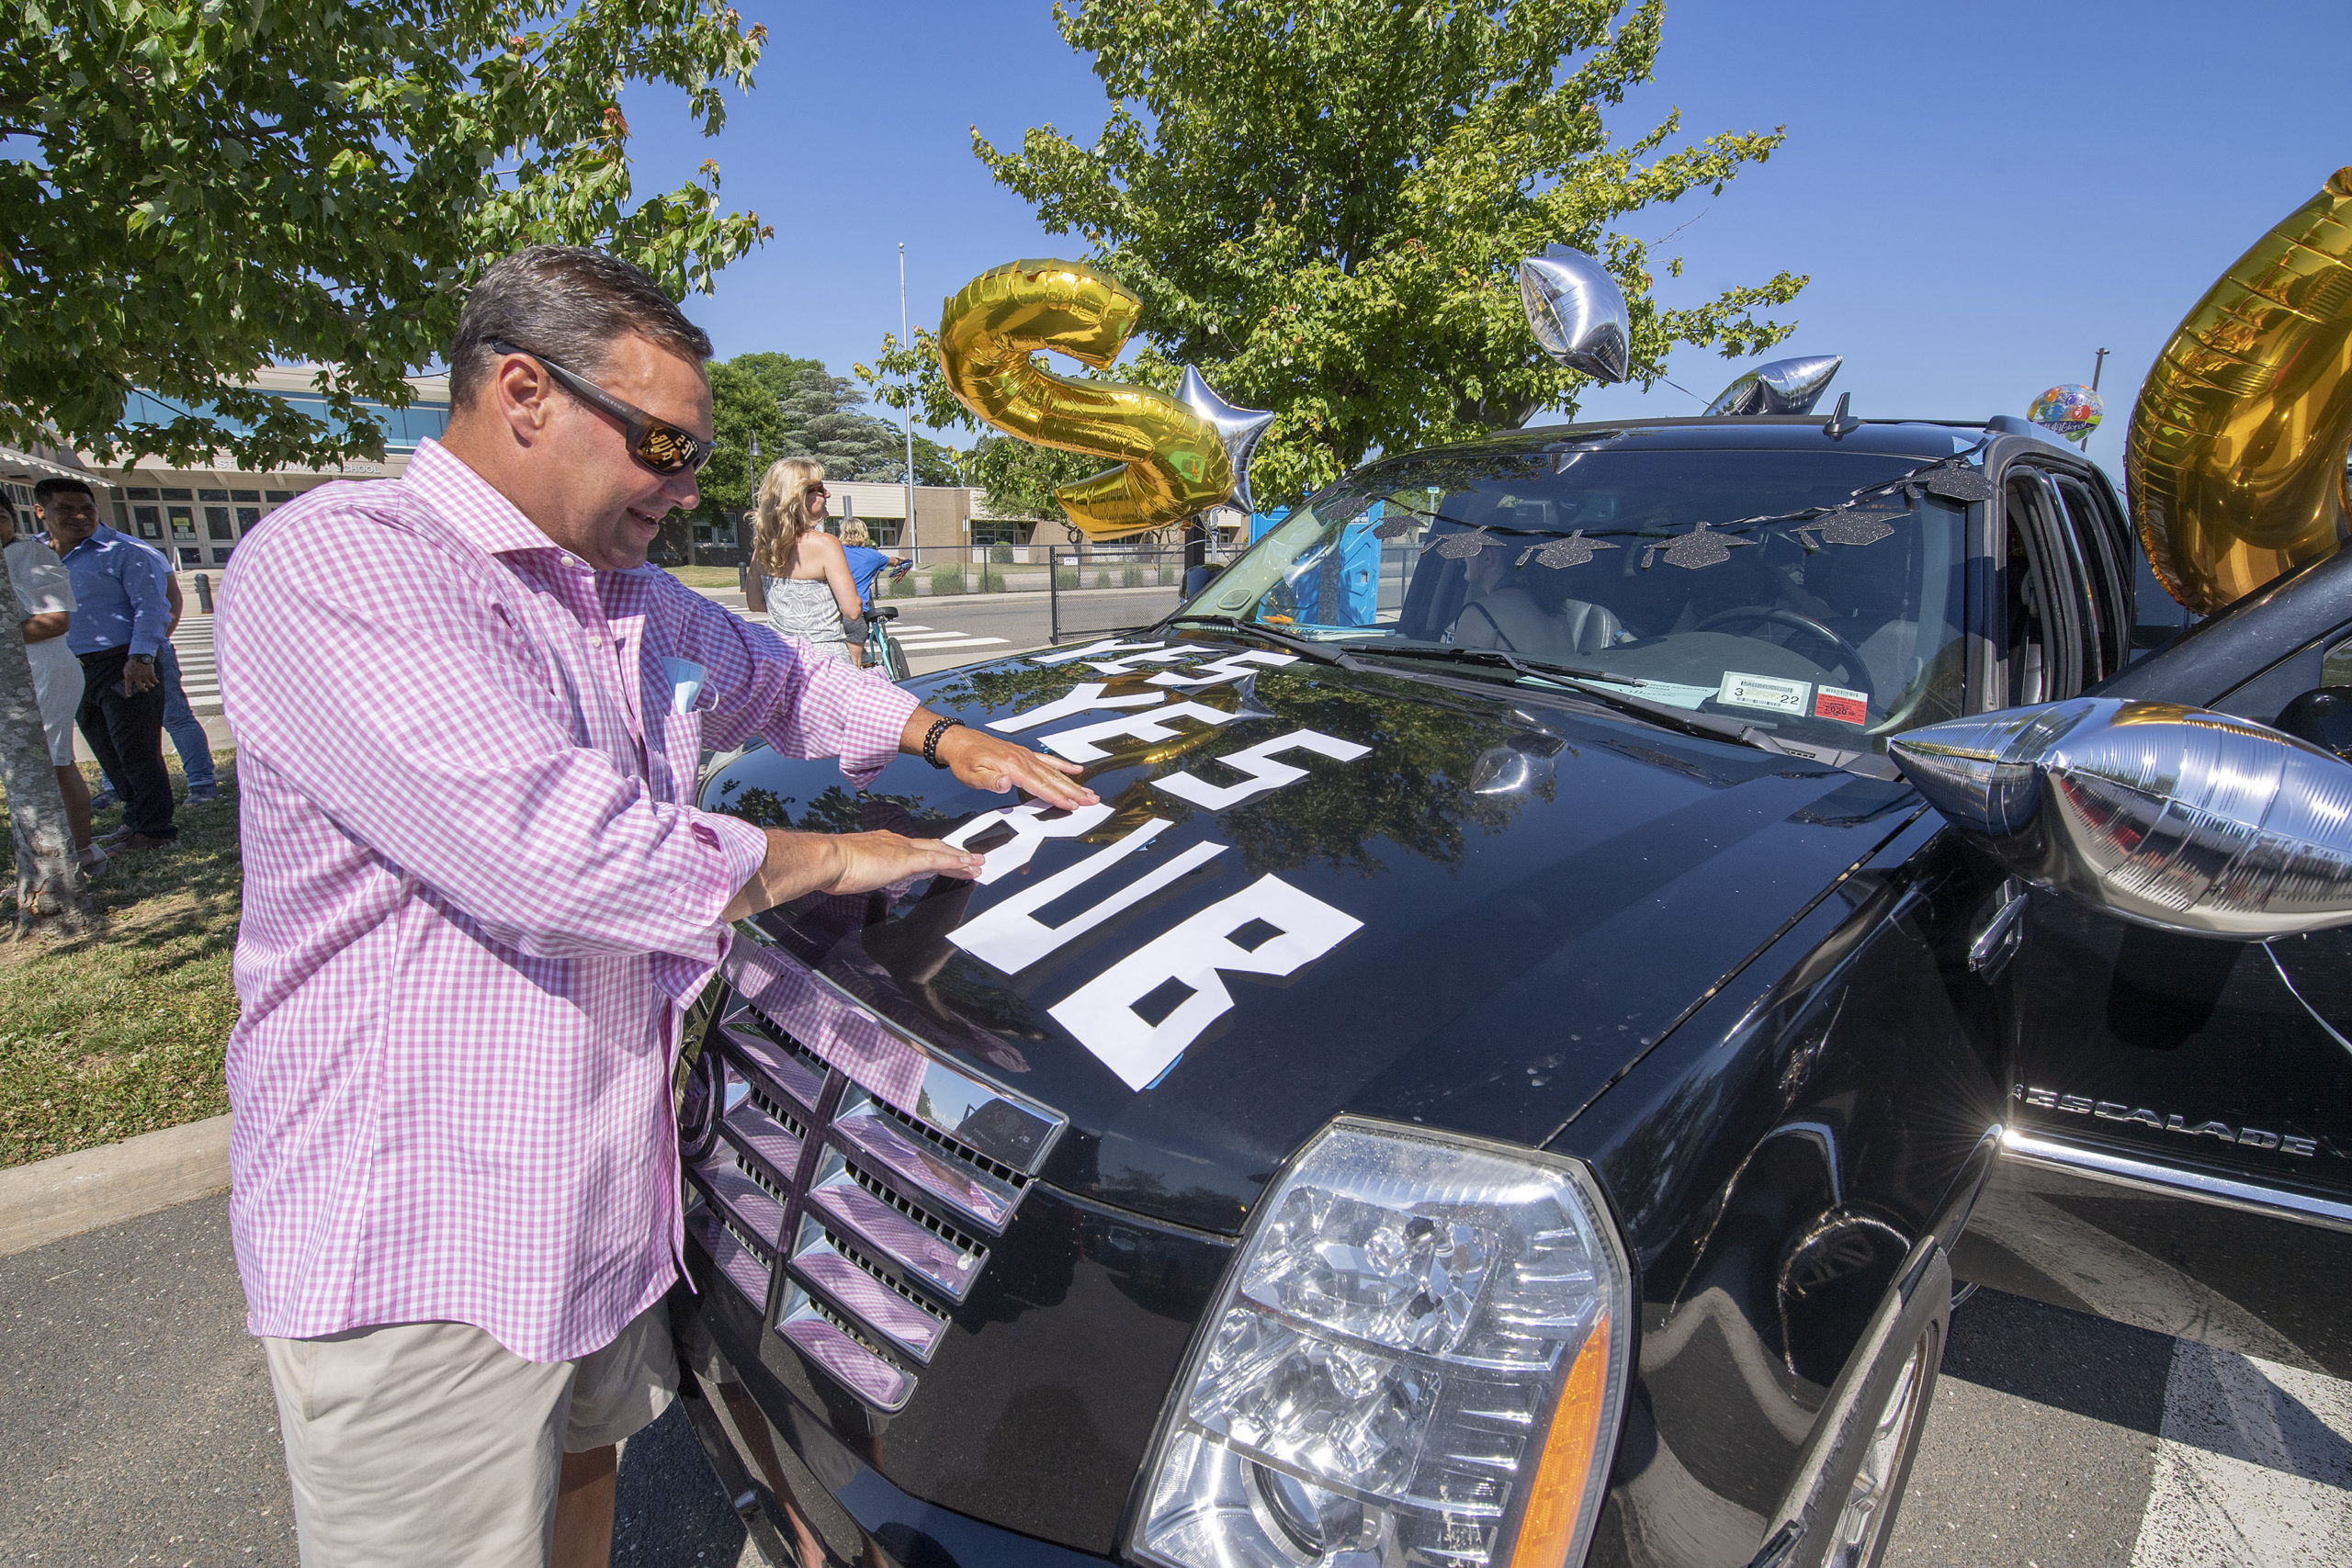 Brian Villante shows some Bonac pride as he decorates his car in the parking lot prior to the 2020 graduation ceremony at the East Hampton High School on Friday.